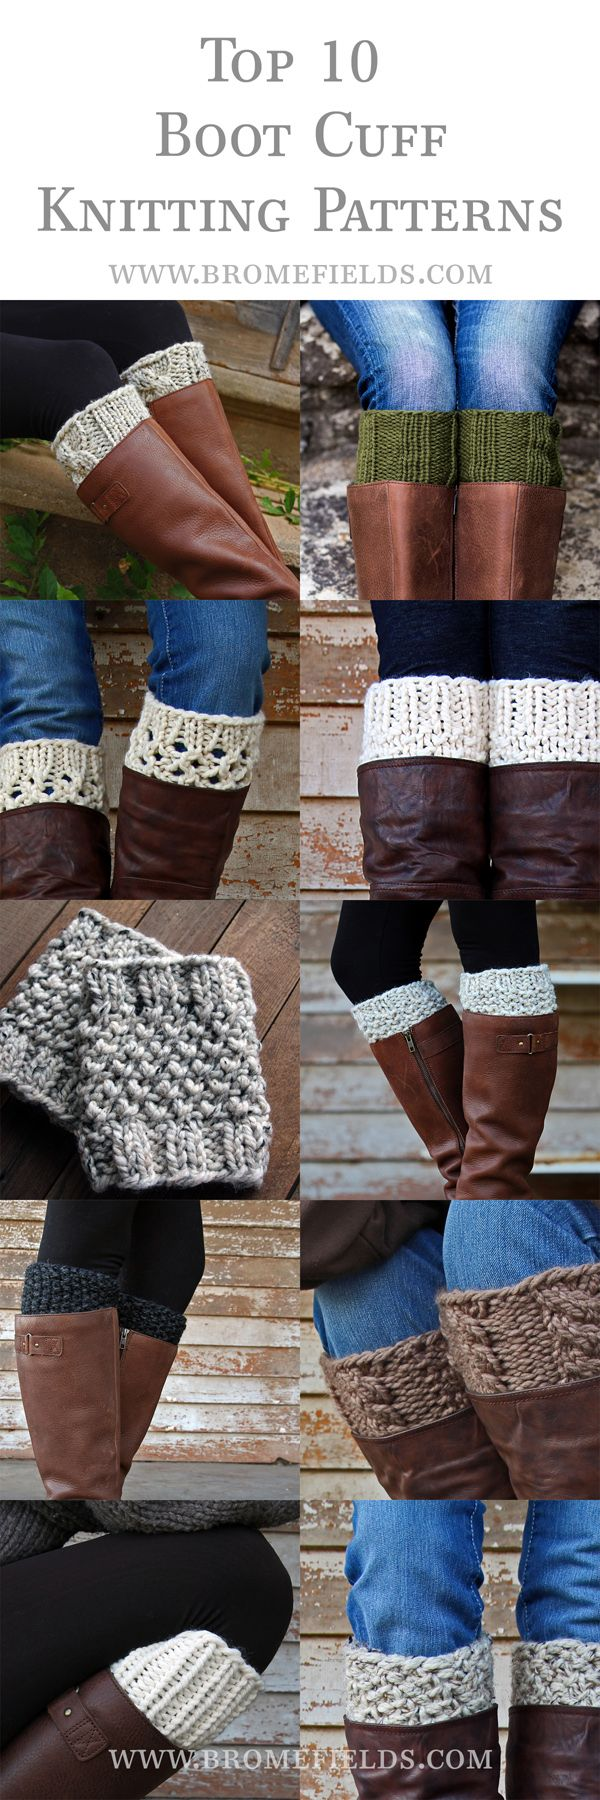 Top 10 Boot Cuff Knitting Patterns for 2016! | Brome Fields Blog ...